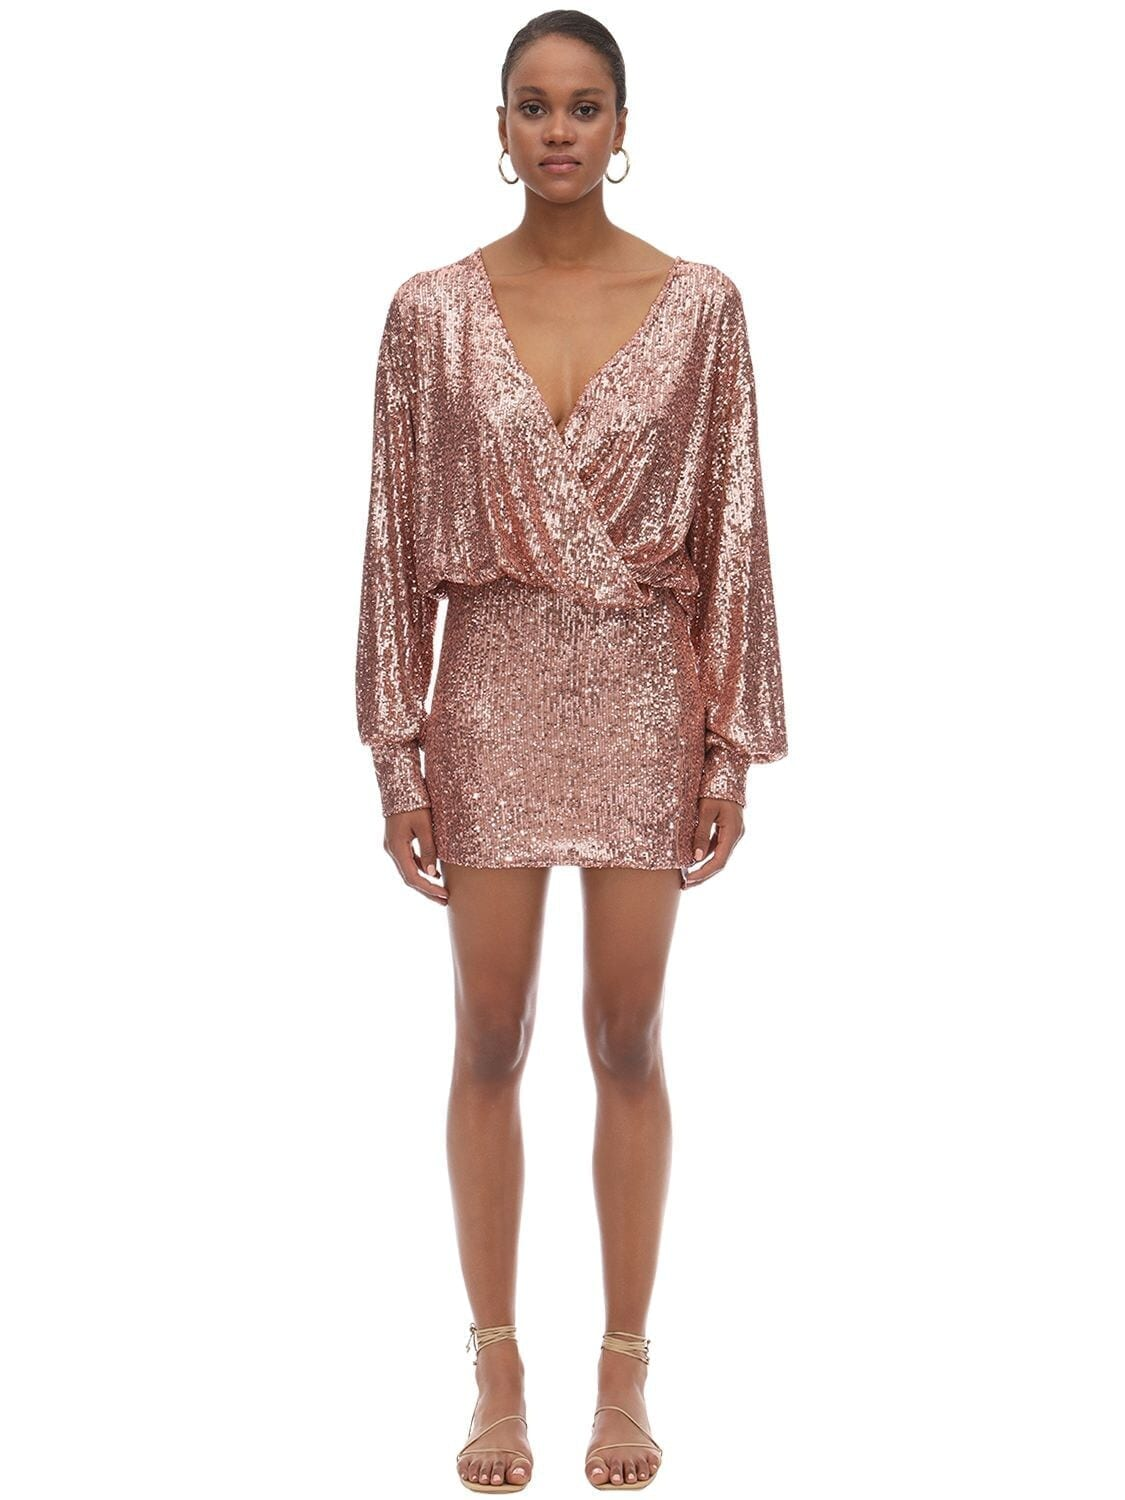 L'AUTRE CHOSE Sequined Stretch Mini Dress